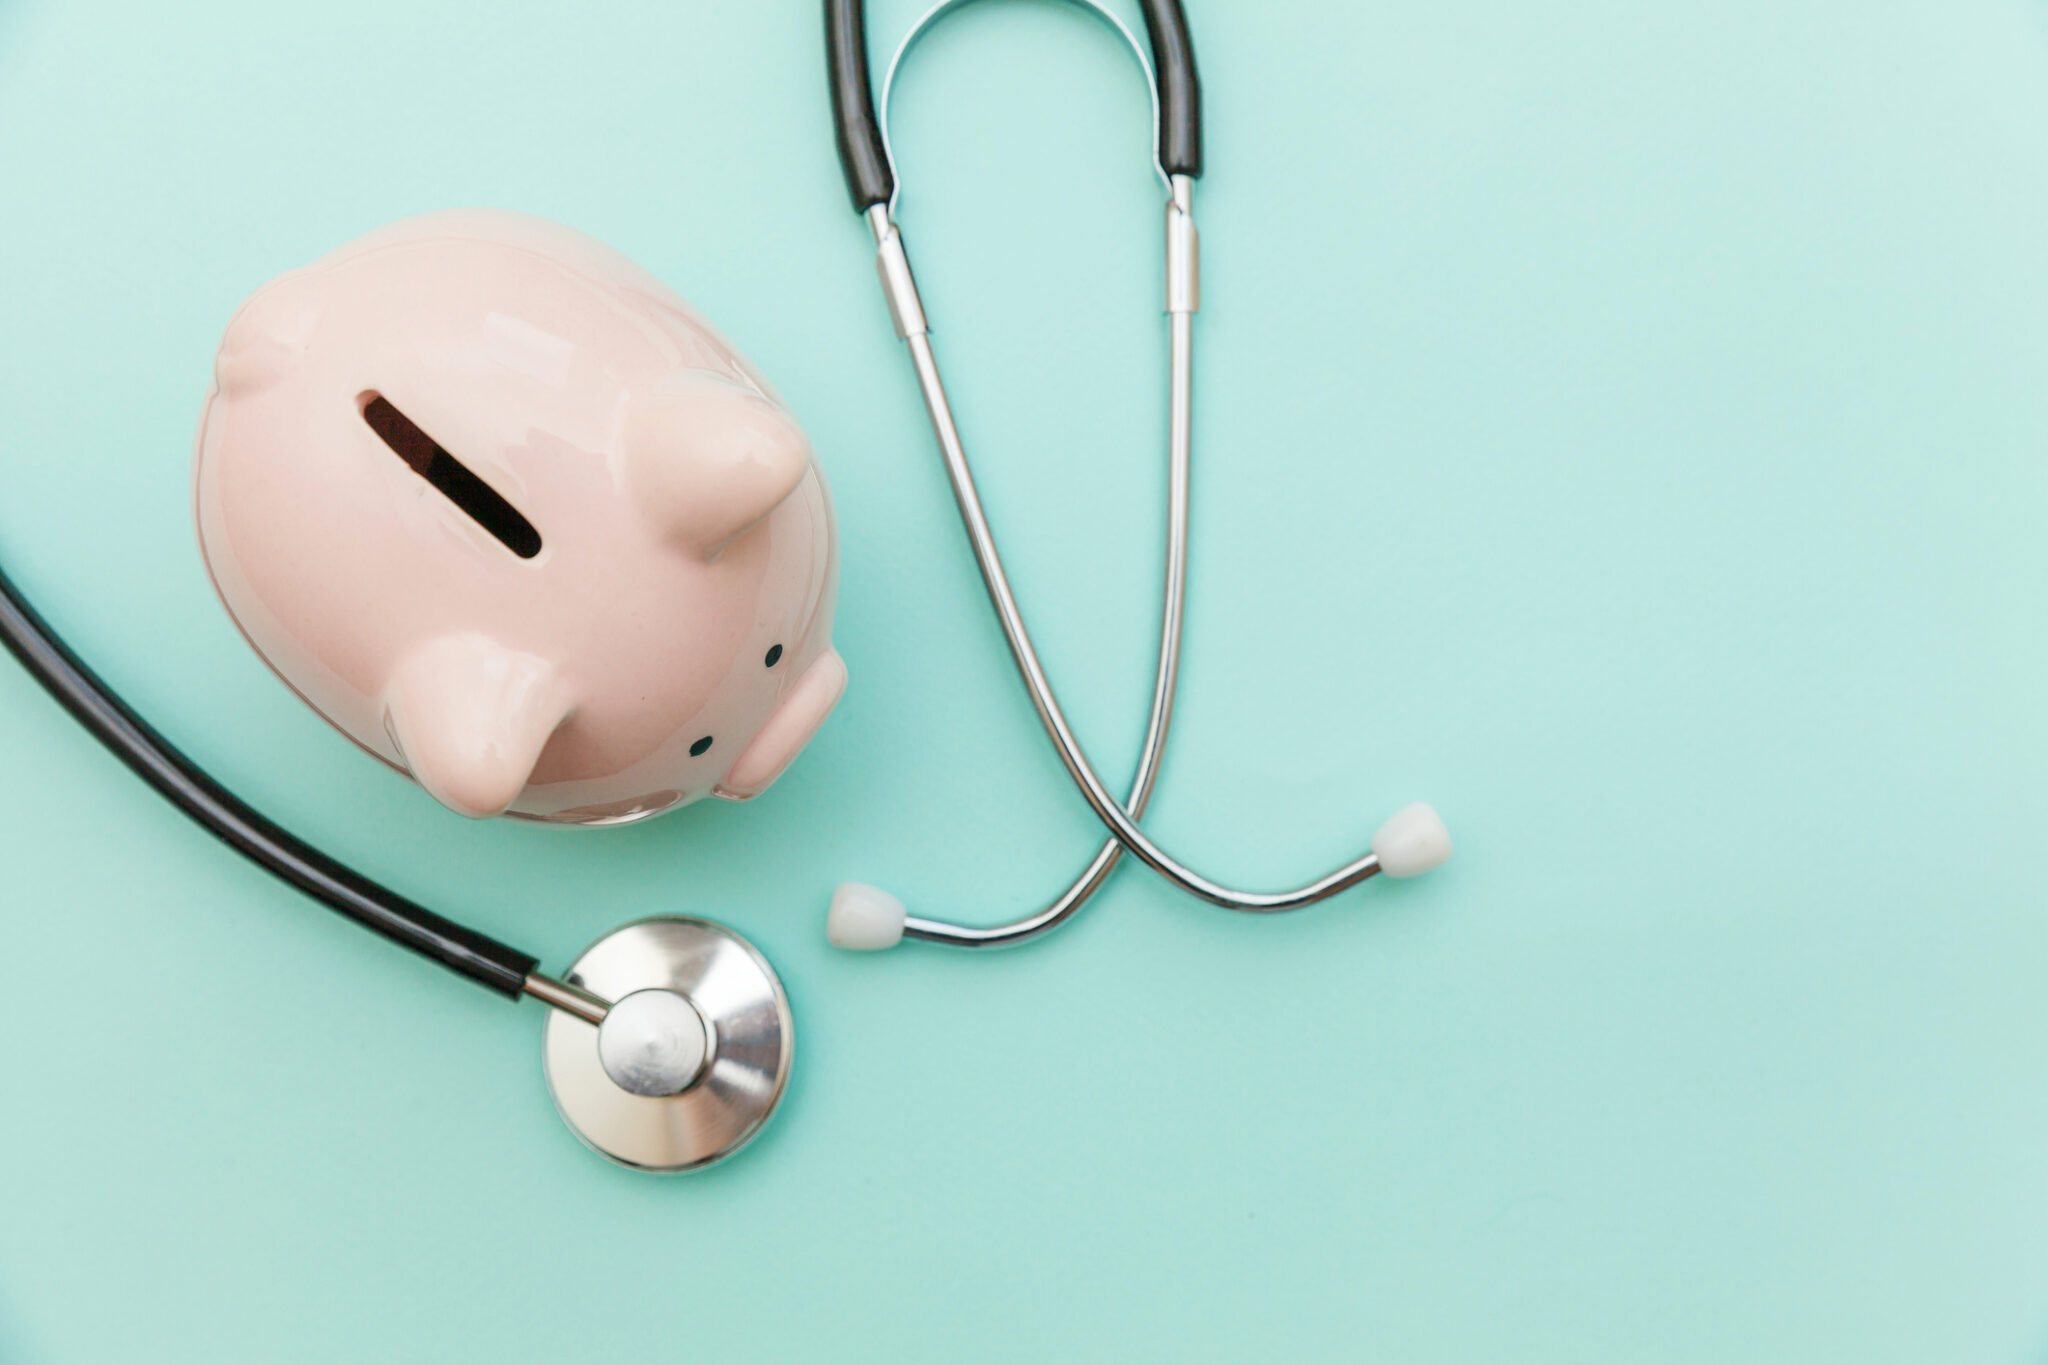 Piggy bank and a stethoscope